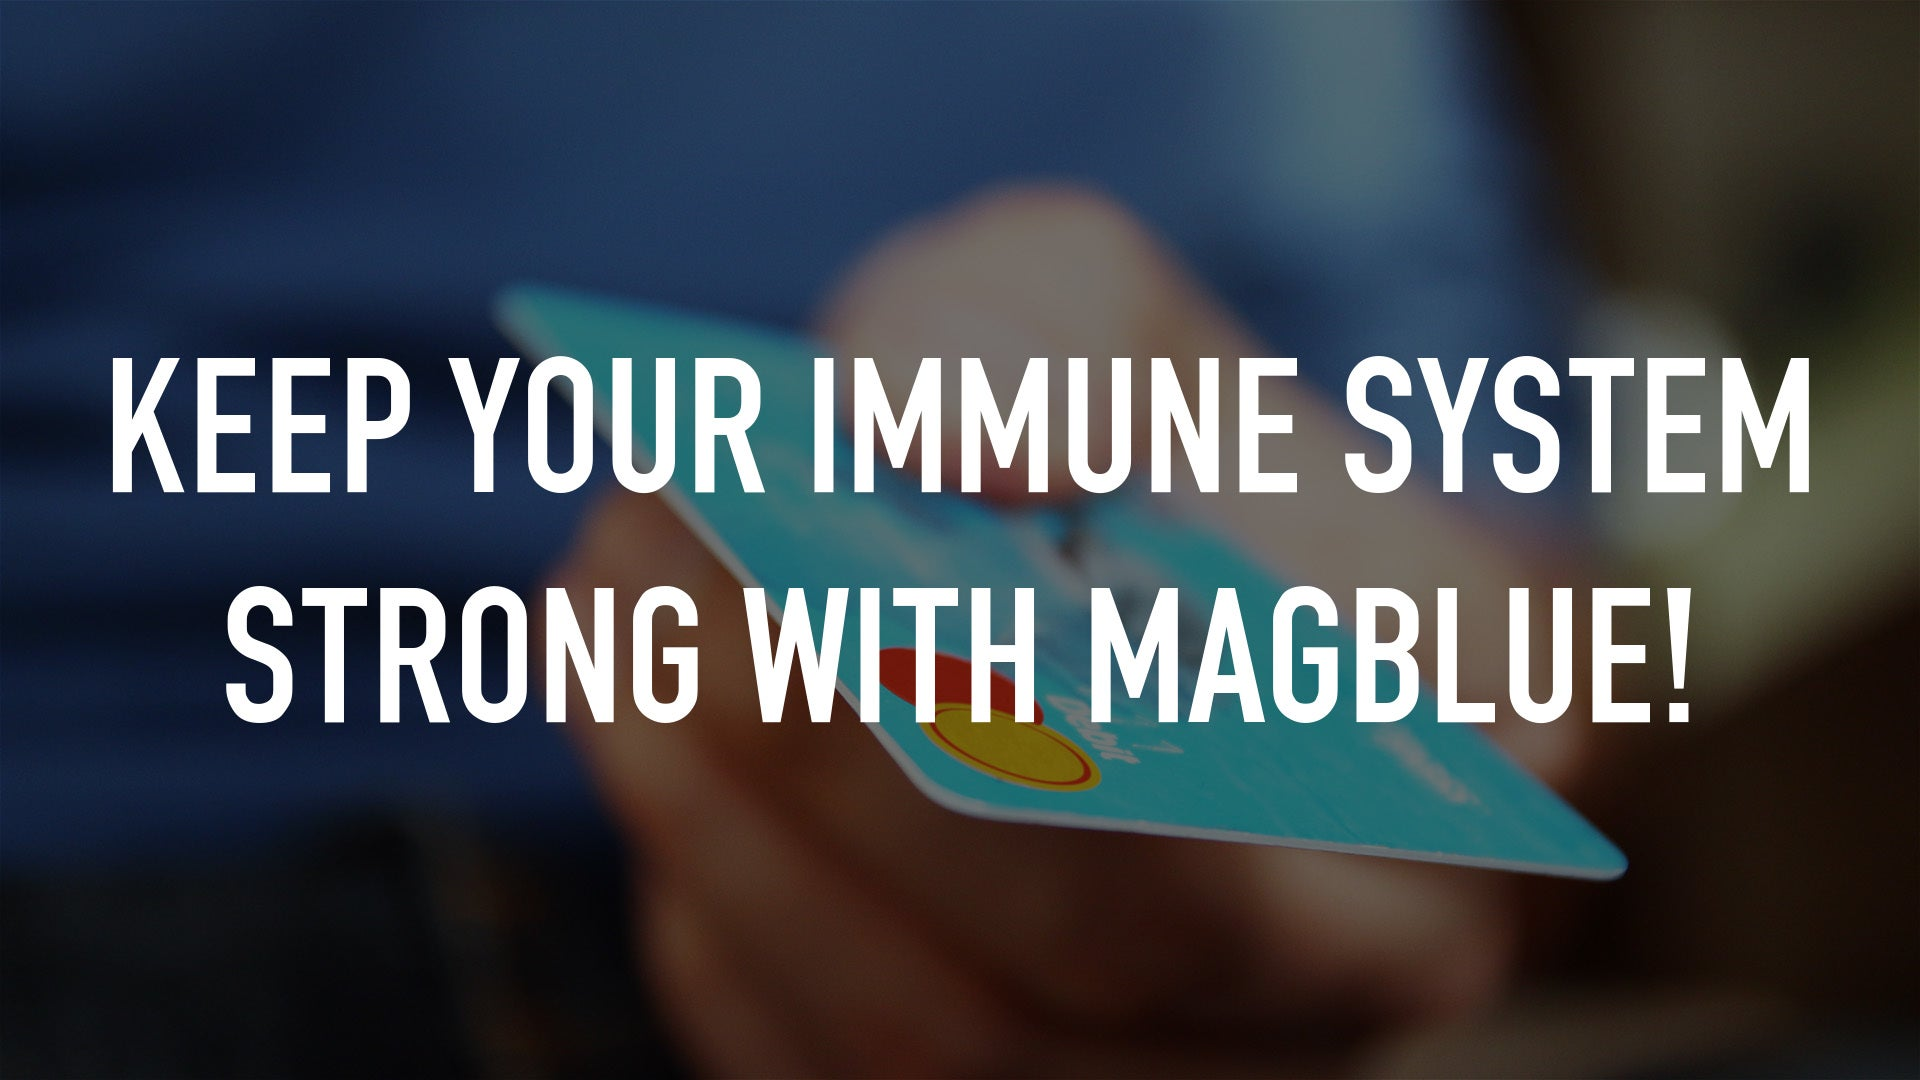 Keep Your Immune System Strong with MagBlue!